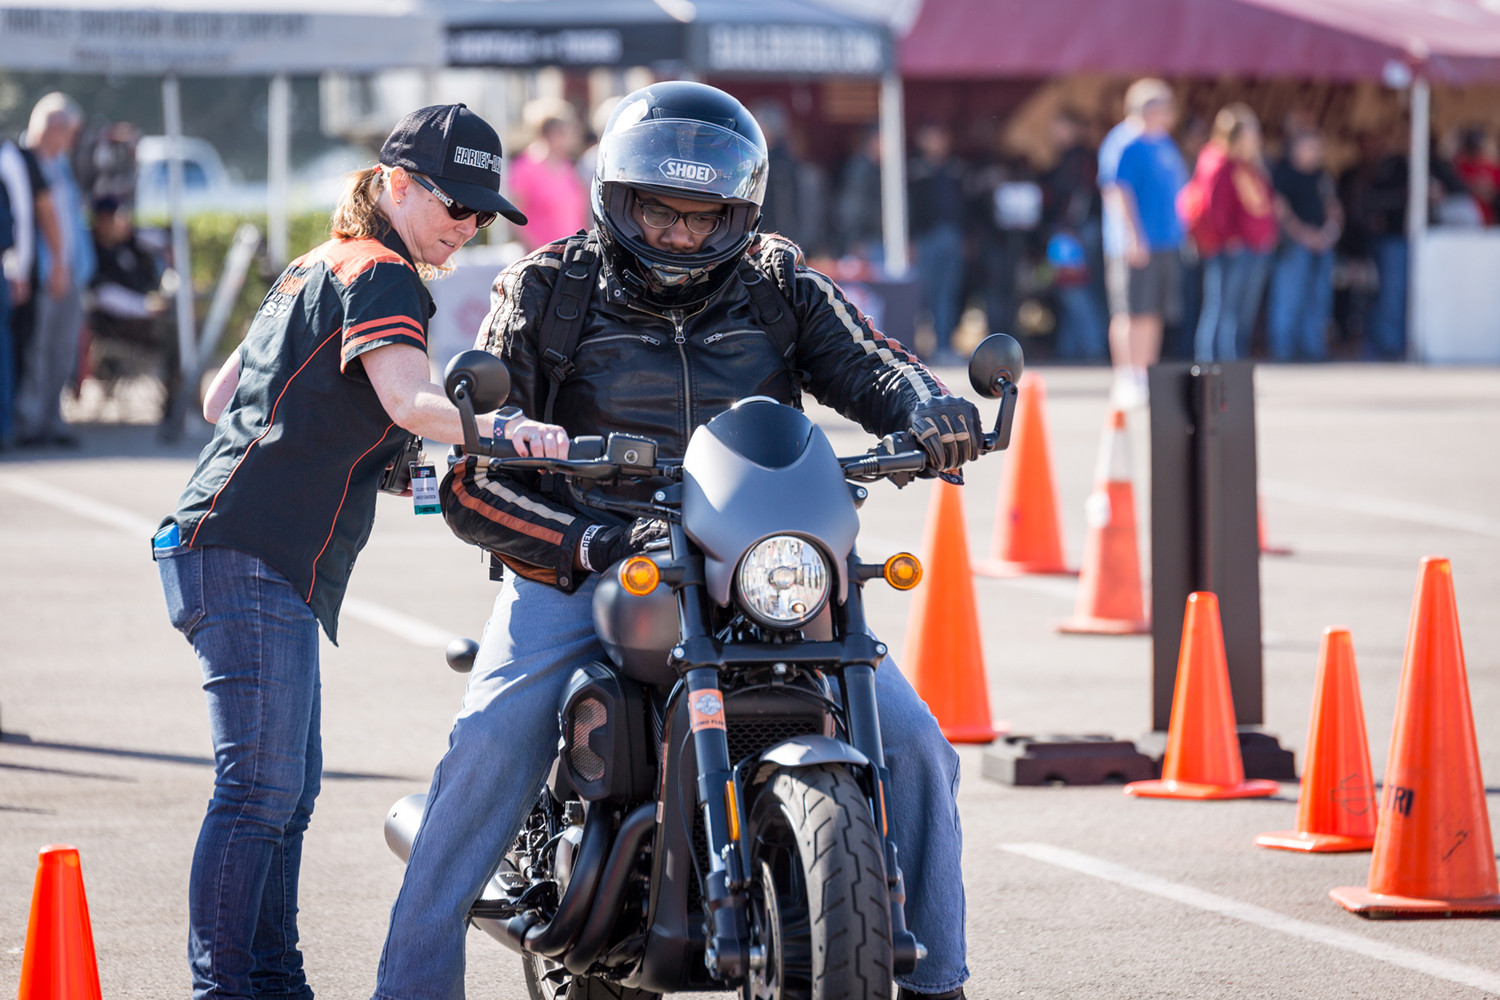 Streetbike demo rides will be part of the IMS Outdoors shows. Photo courtesy IMS Outdoors.